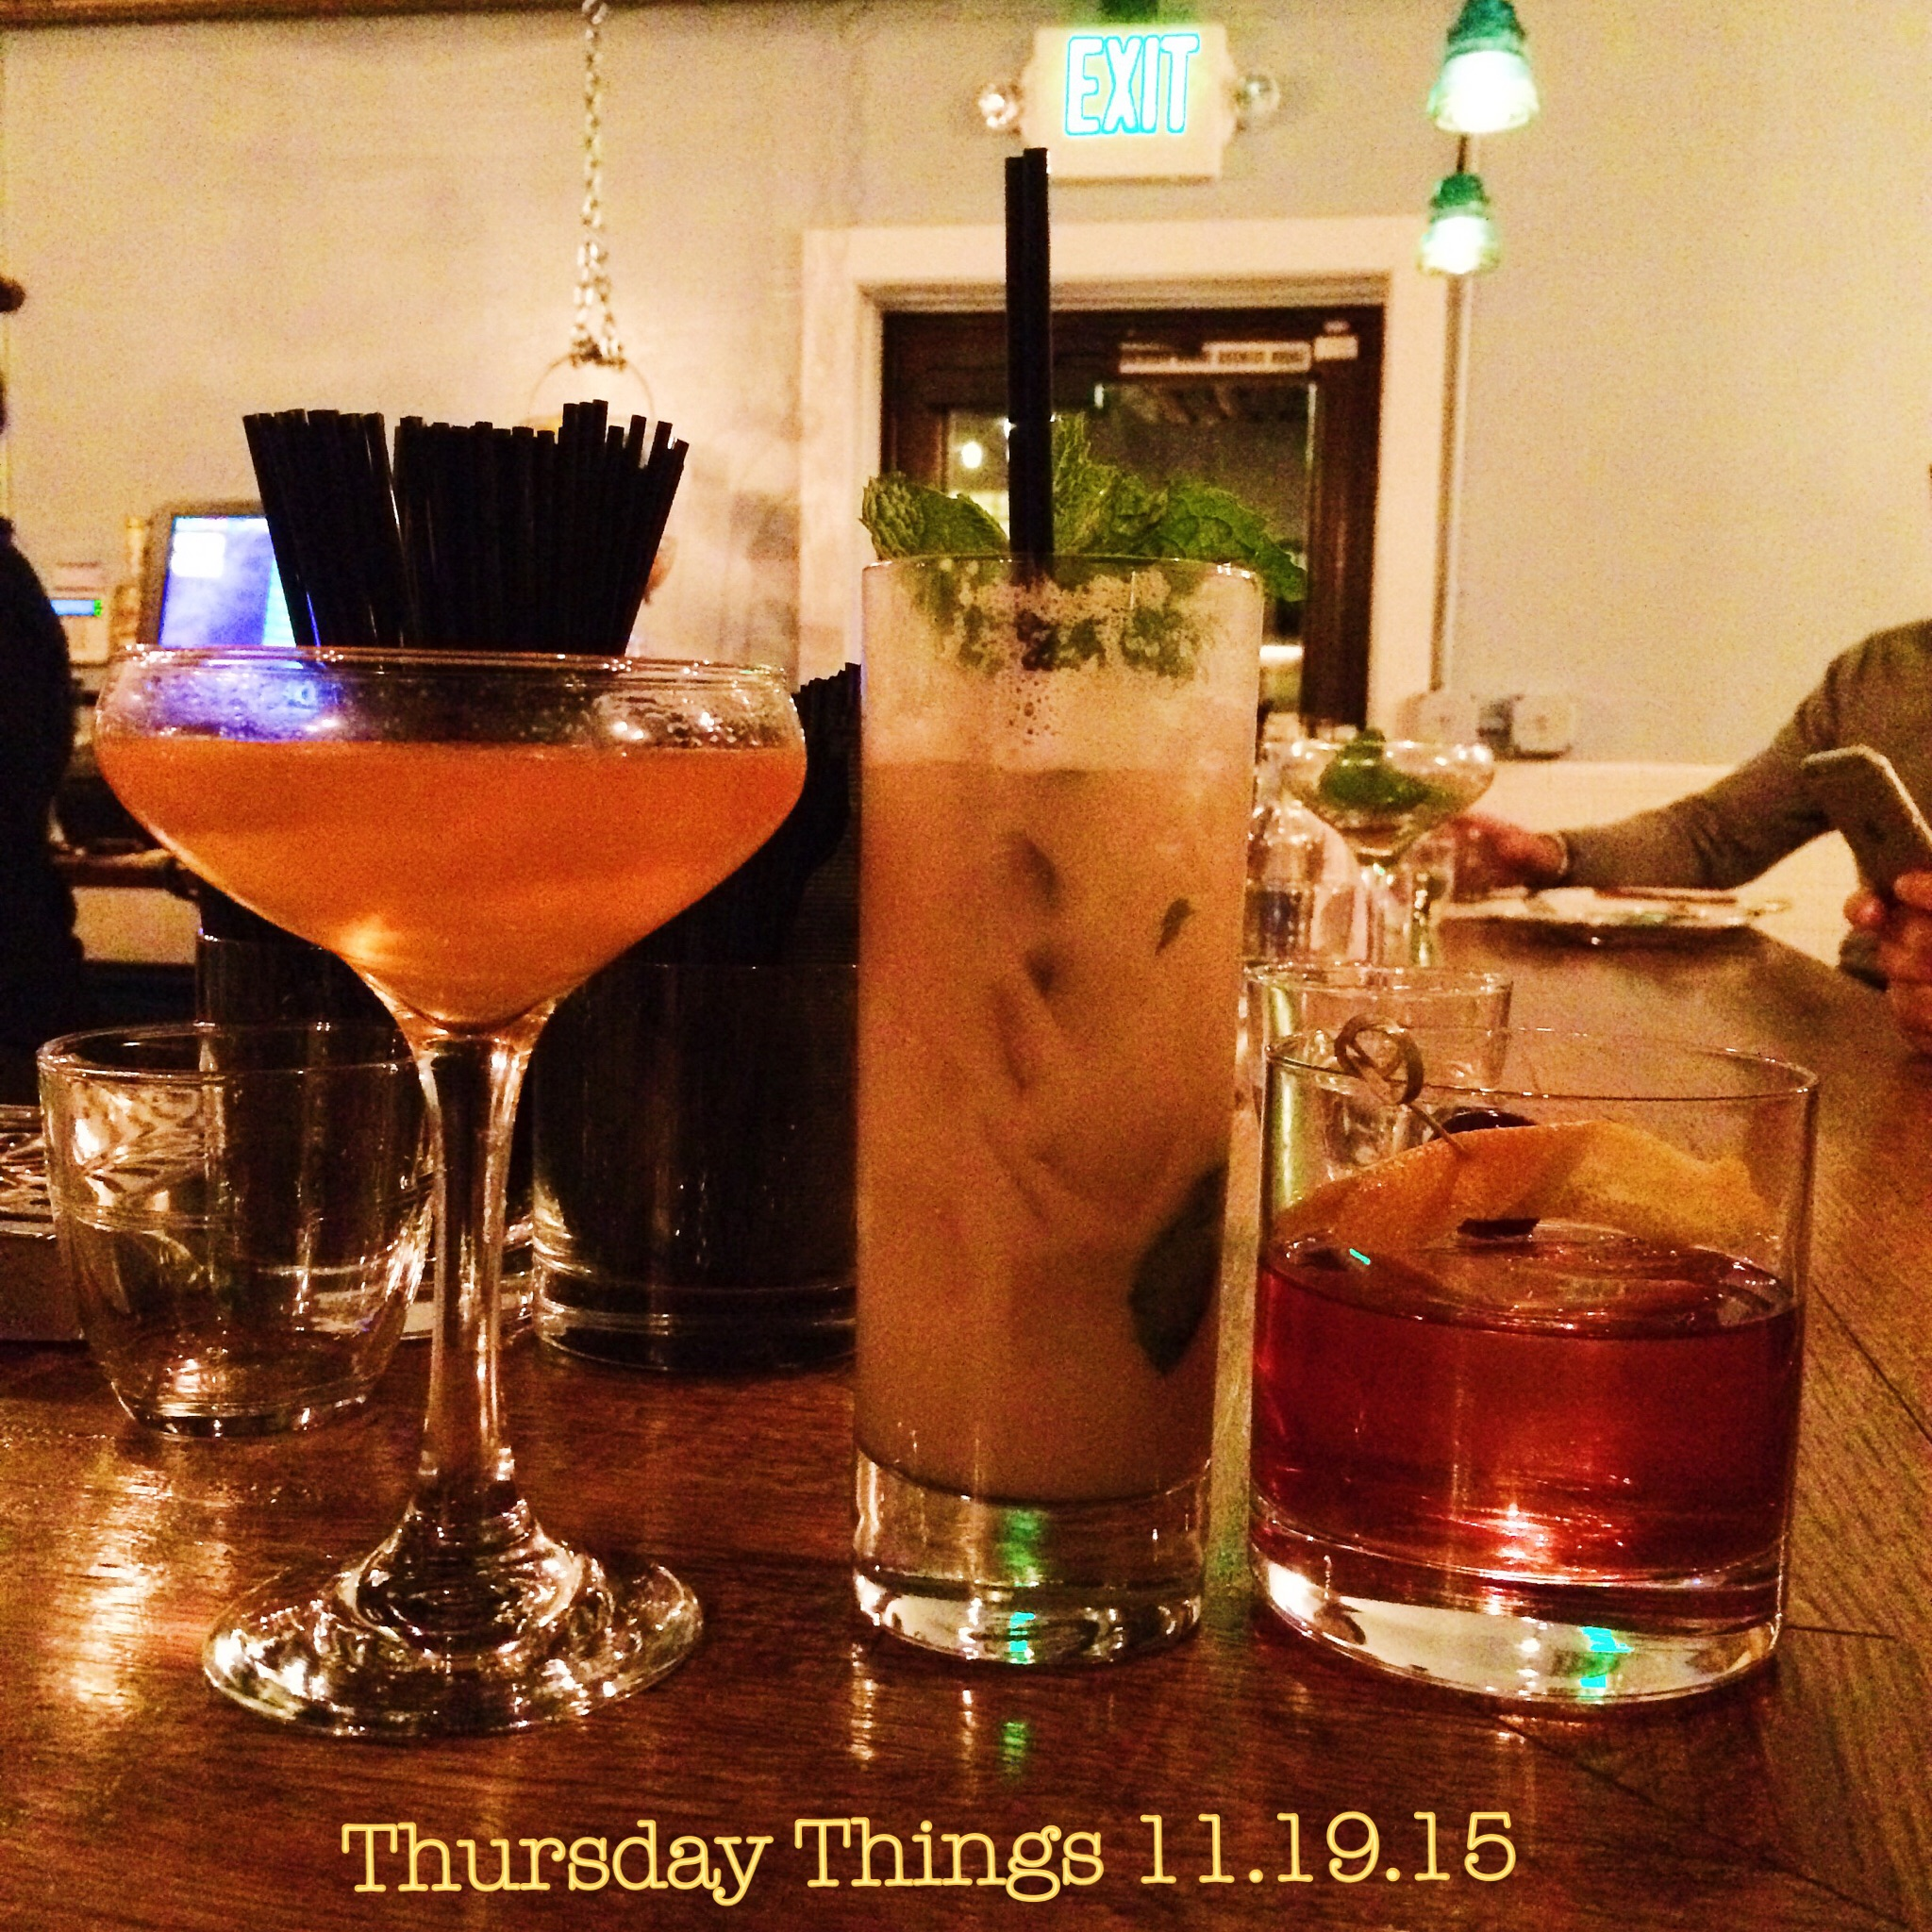 Thursday Things 11.19.15